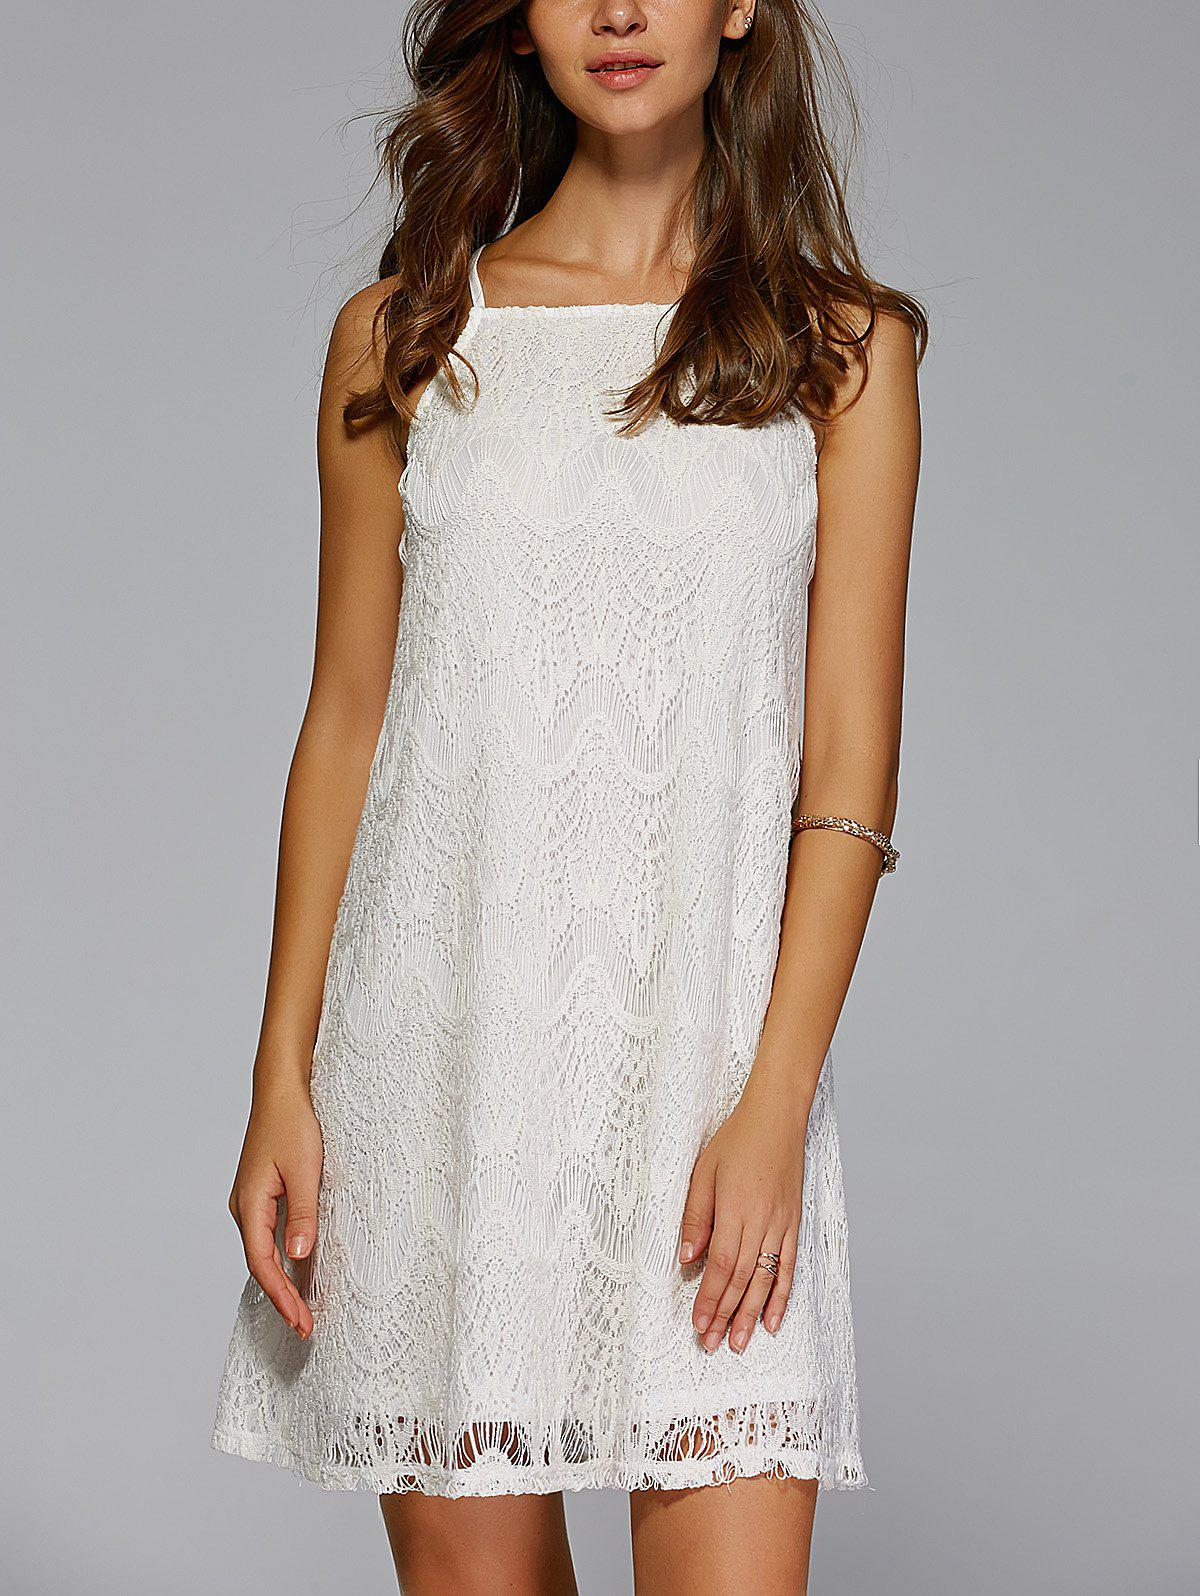 Stylish Spaghetti Strap Crochet Solid Color Mini Dress - OFF WHITE XL